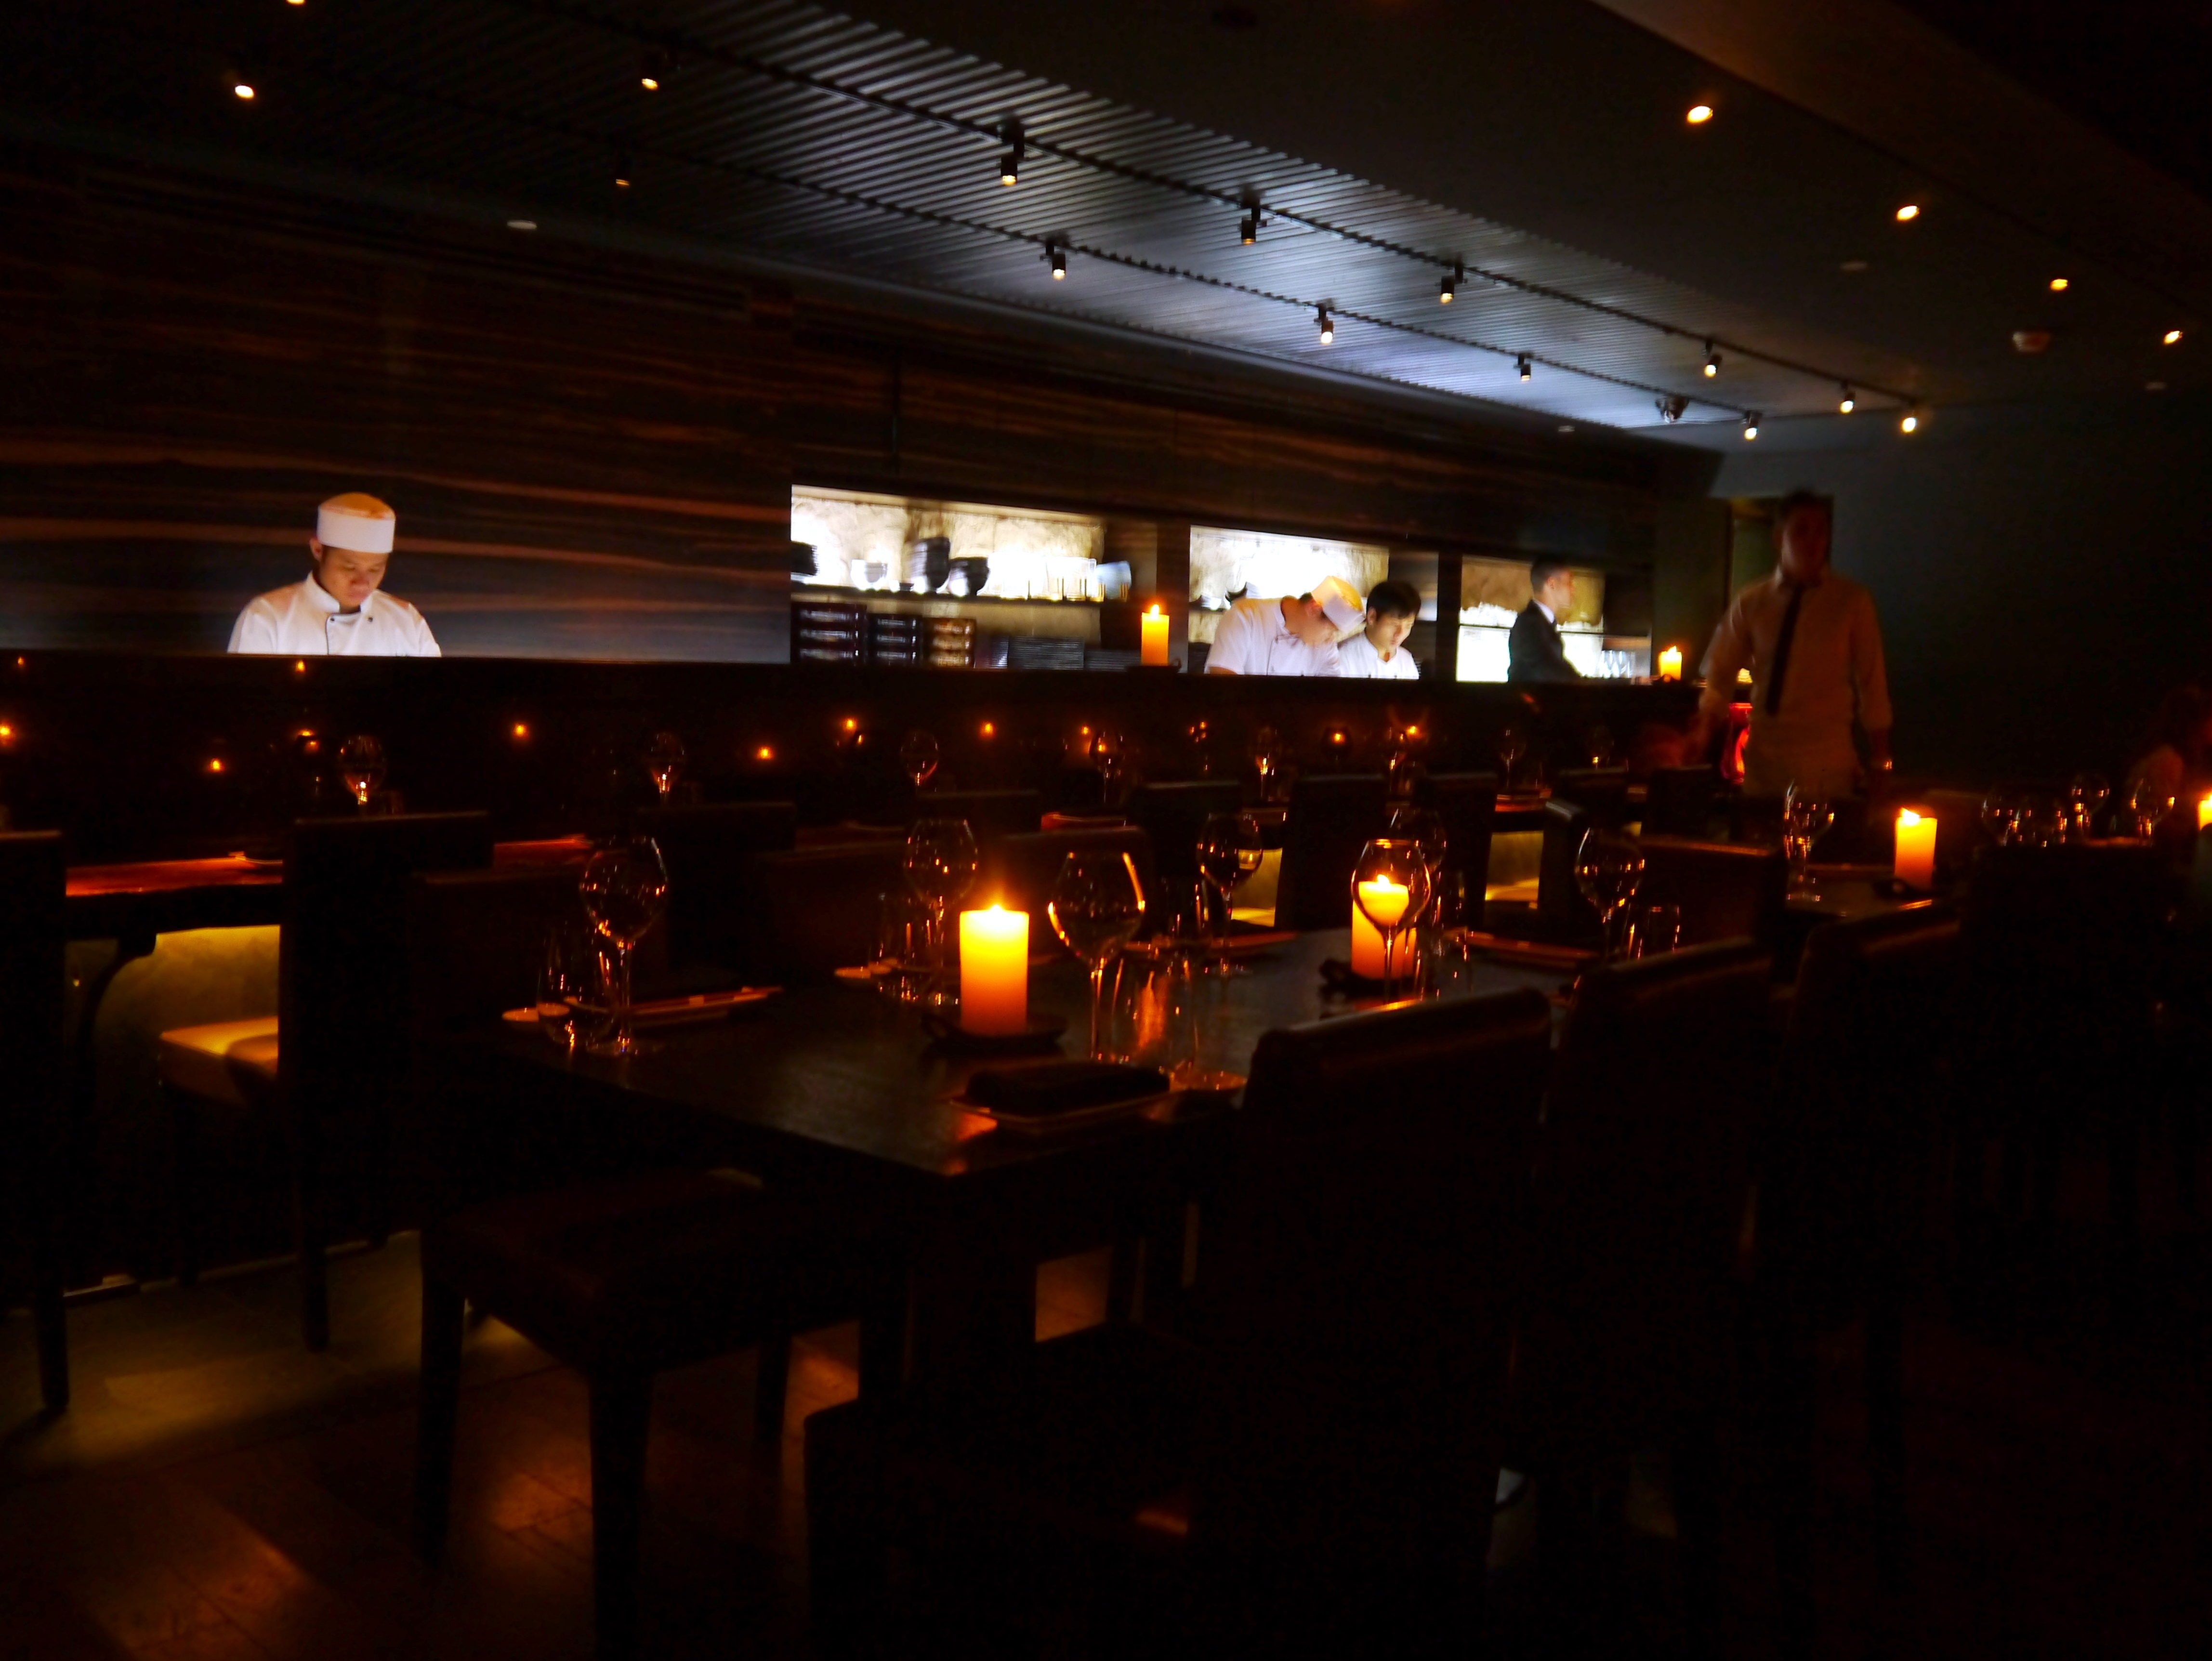 Okku dubai honestly foodie view across to the sushi bar delicately lit by candlelight mozeypictures Image collections